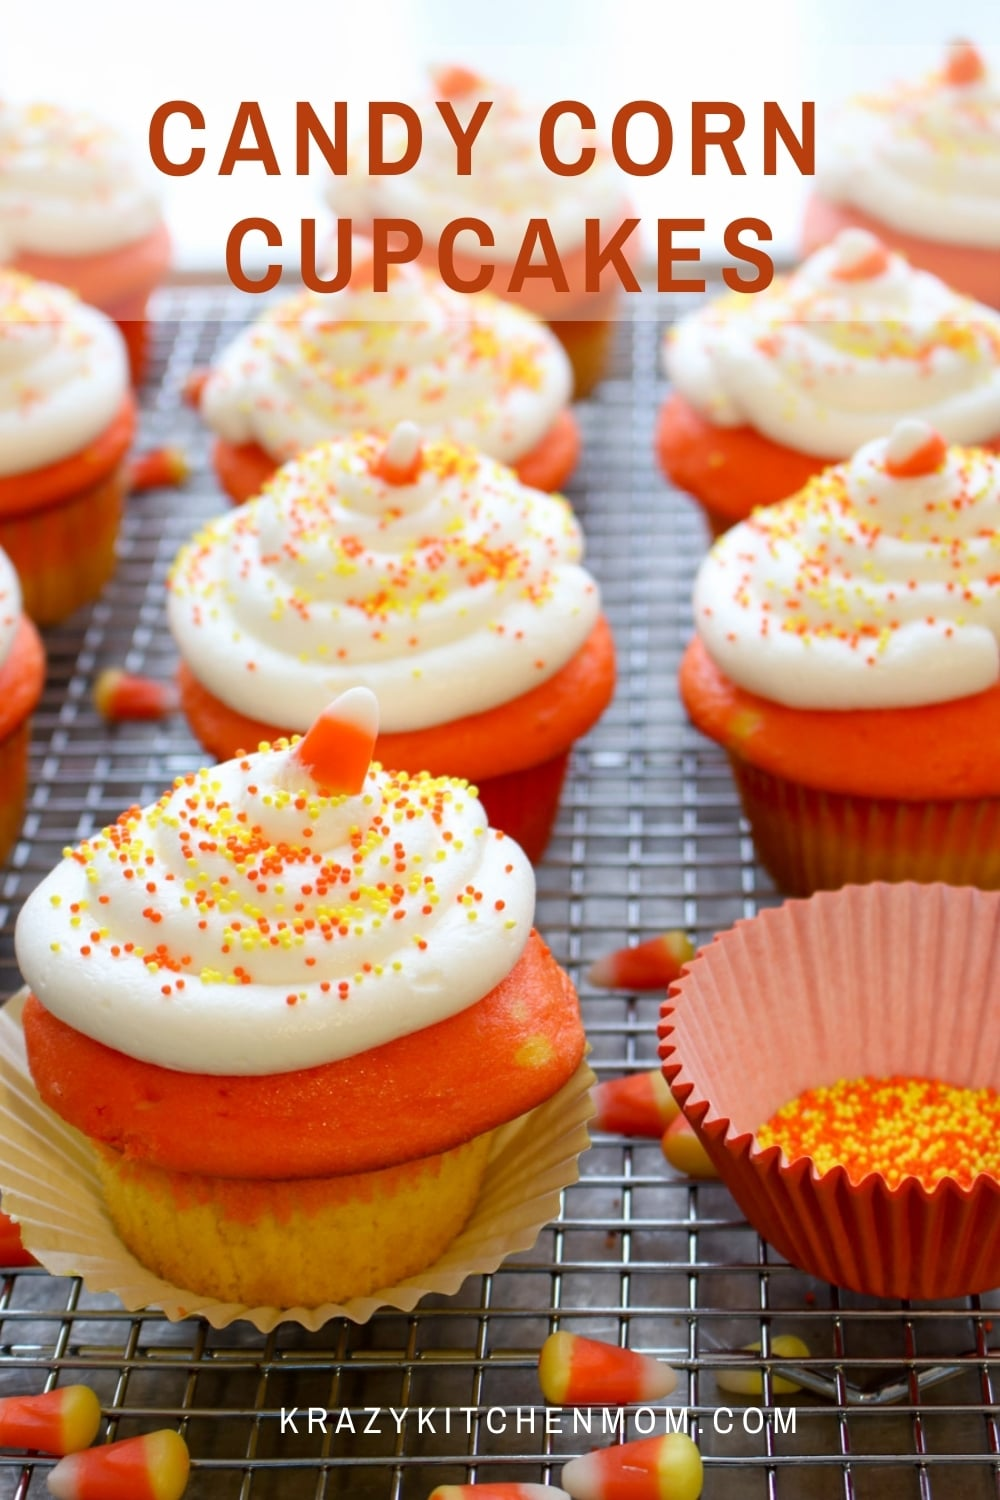 Fun Halloween Cupcake treats made from a box mix and frosted with cream cheese frosting.  via @krazykitchenmom